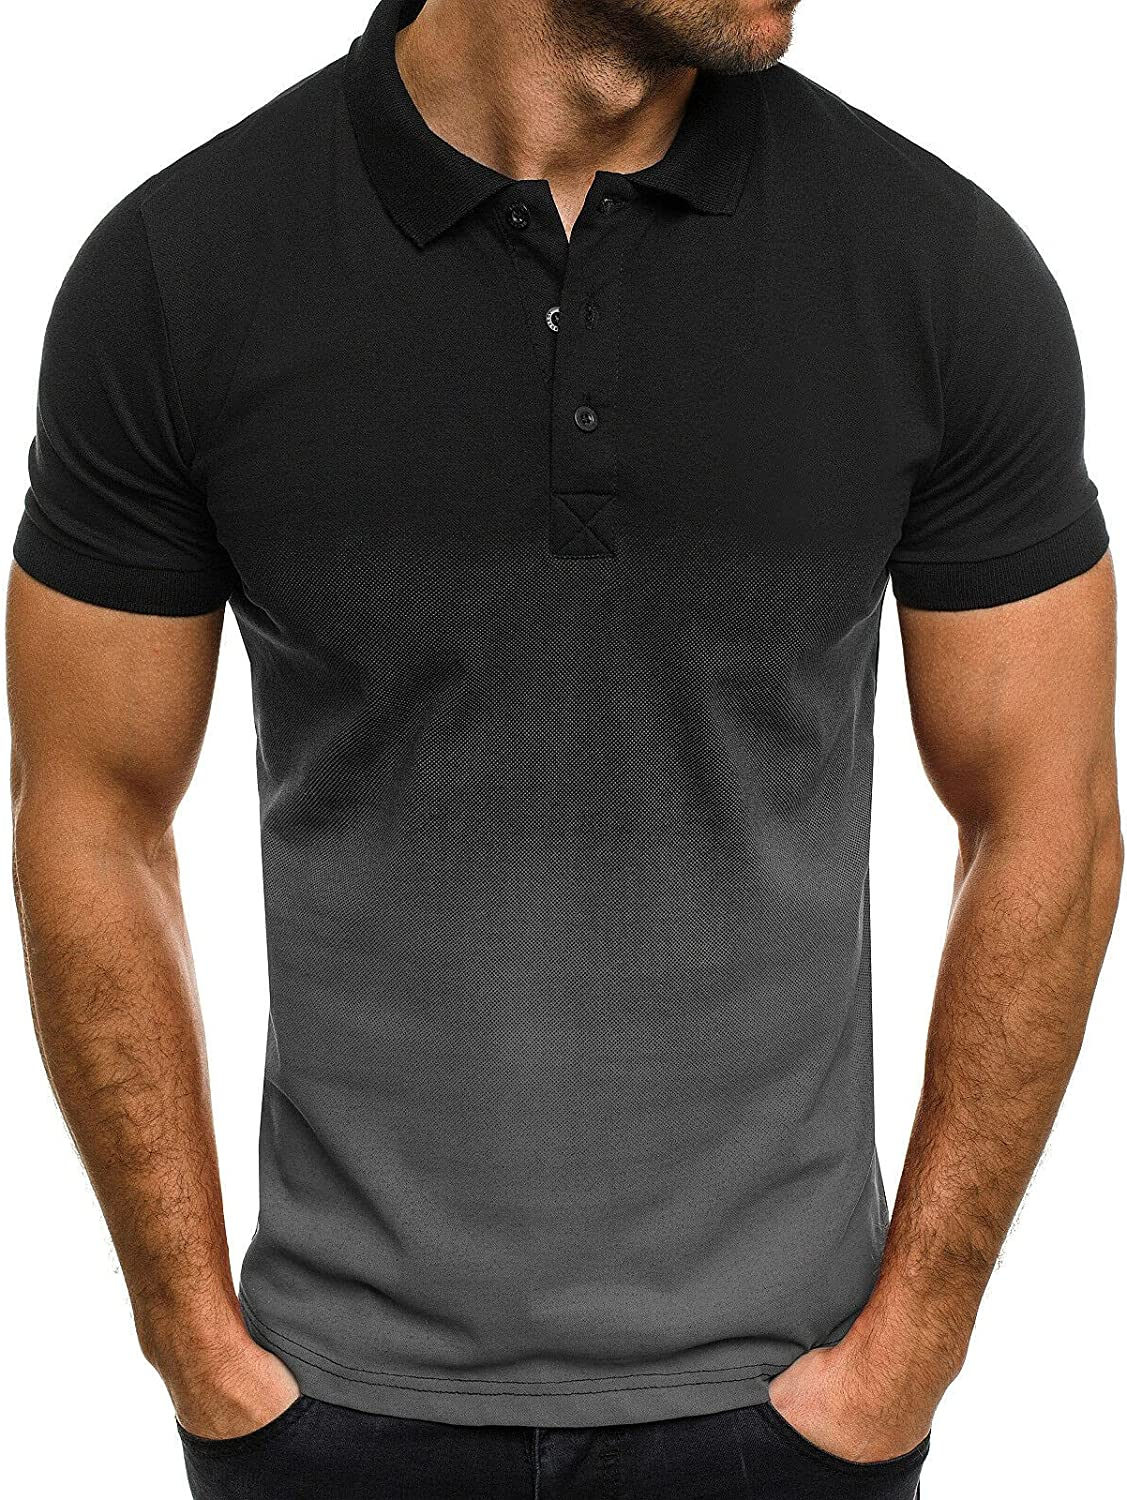 Homisy Polo t Shirts for Men Stand-Up 3D Shirt Collar Gr Dye free Tie Ranking TOP6